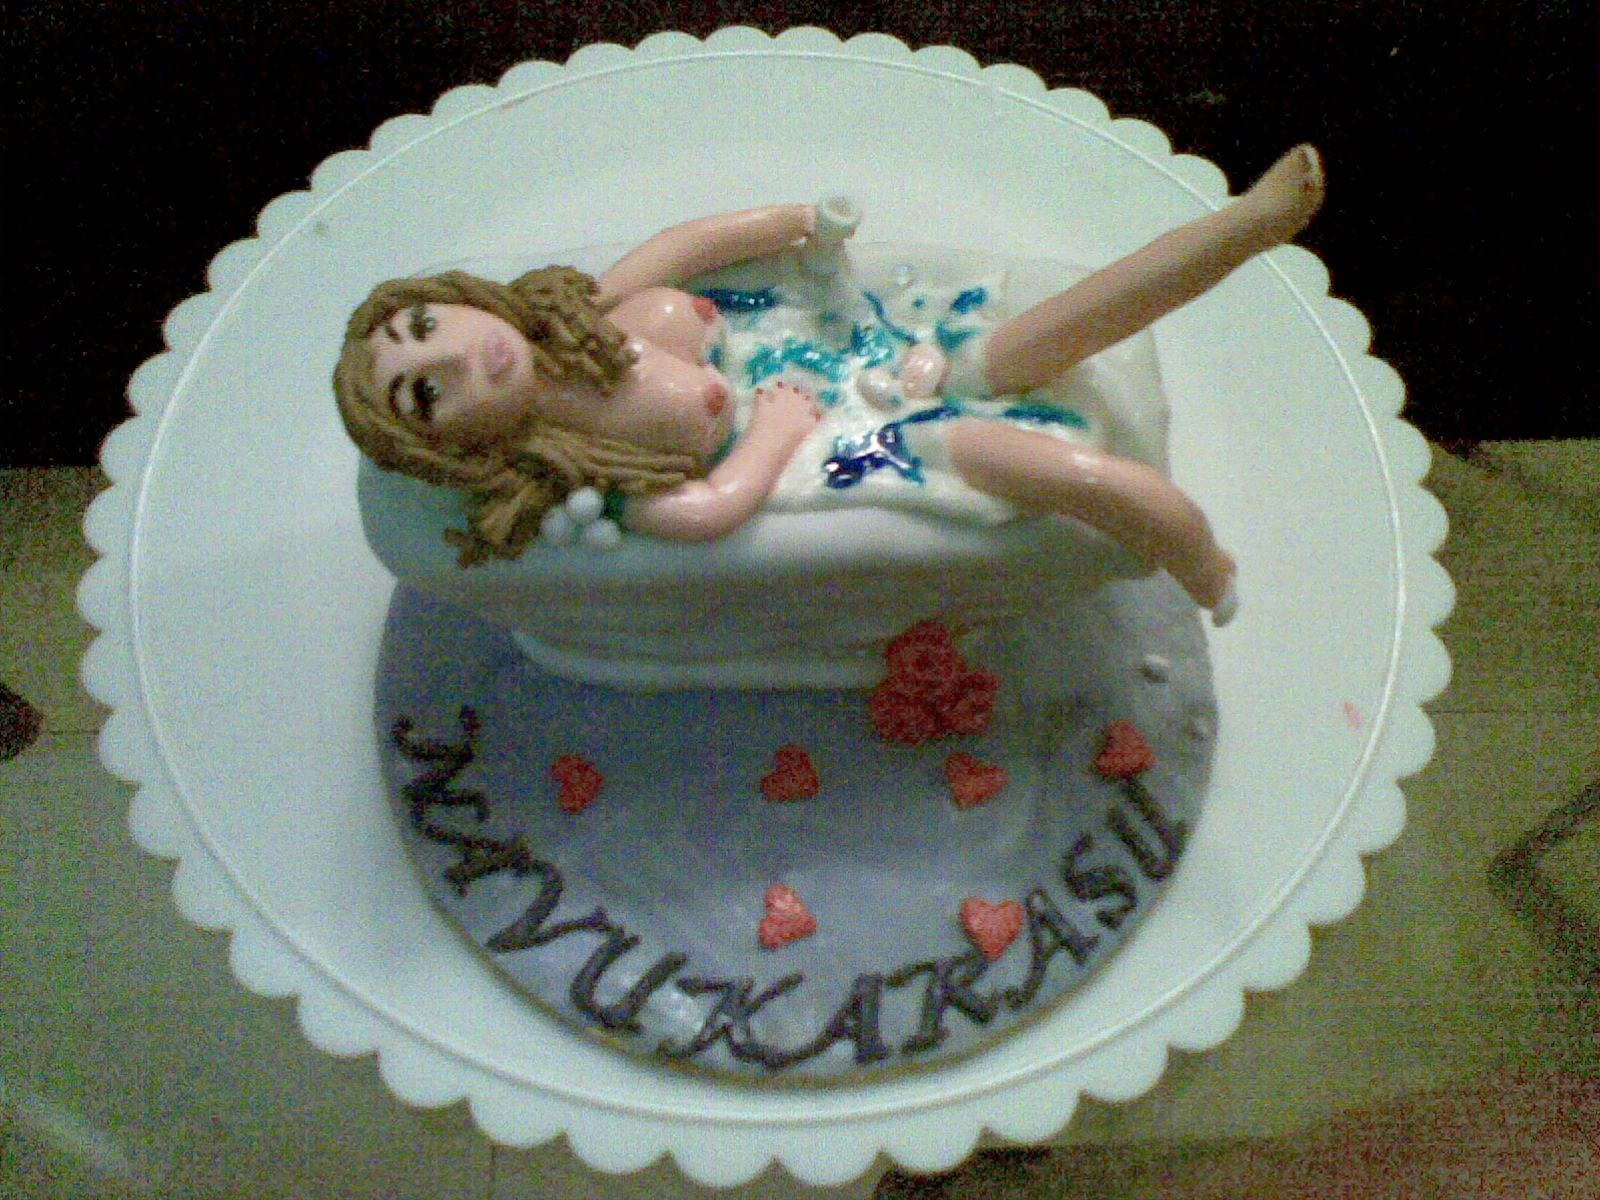 Naughty Cakes Party Cake Ideas And Designs